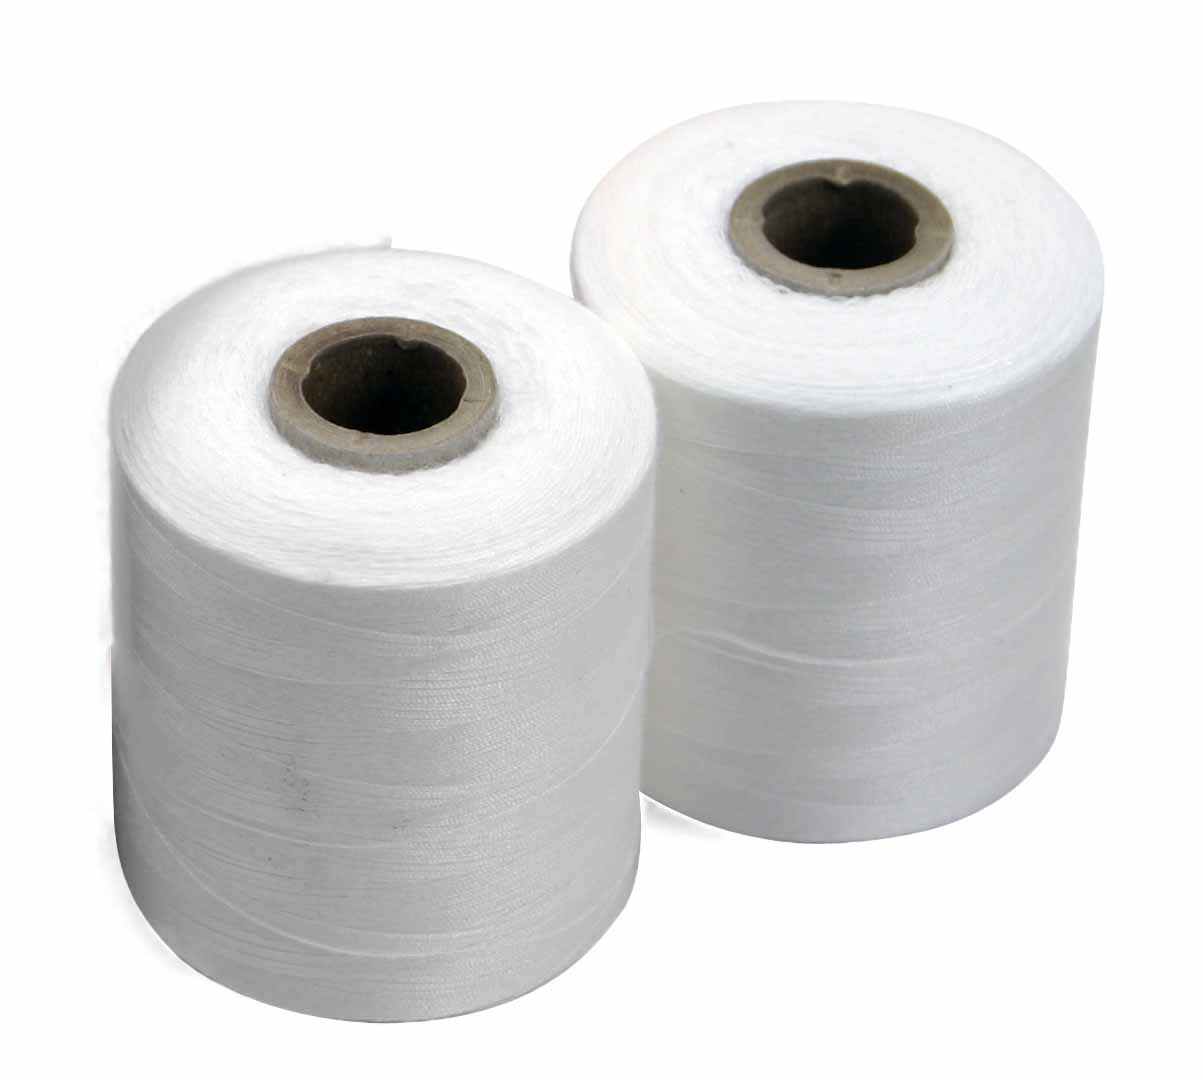 FOR HIPCH/T - Hip Chain Replacement Thread 9,000 ft. roll (white)